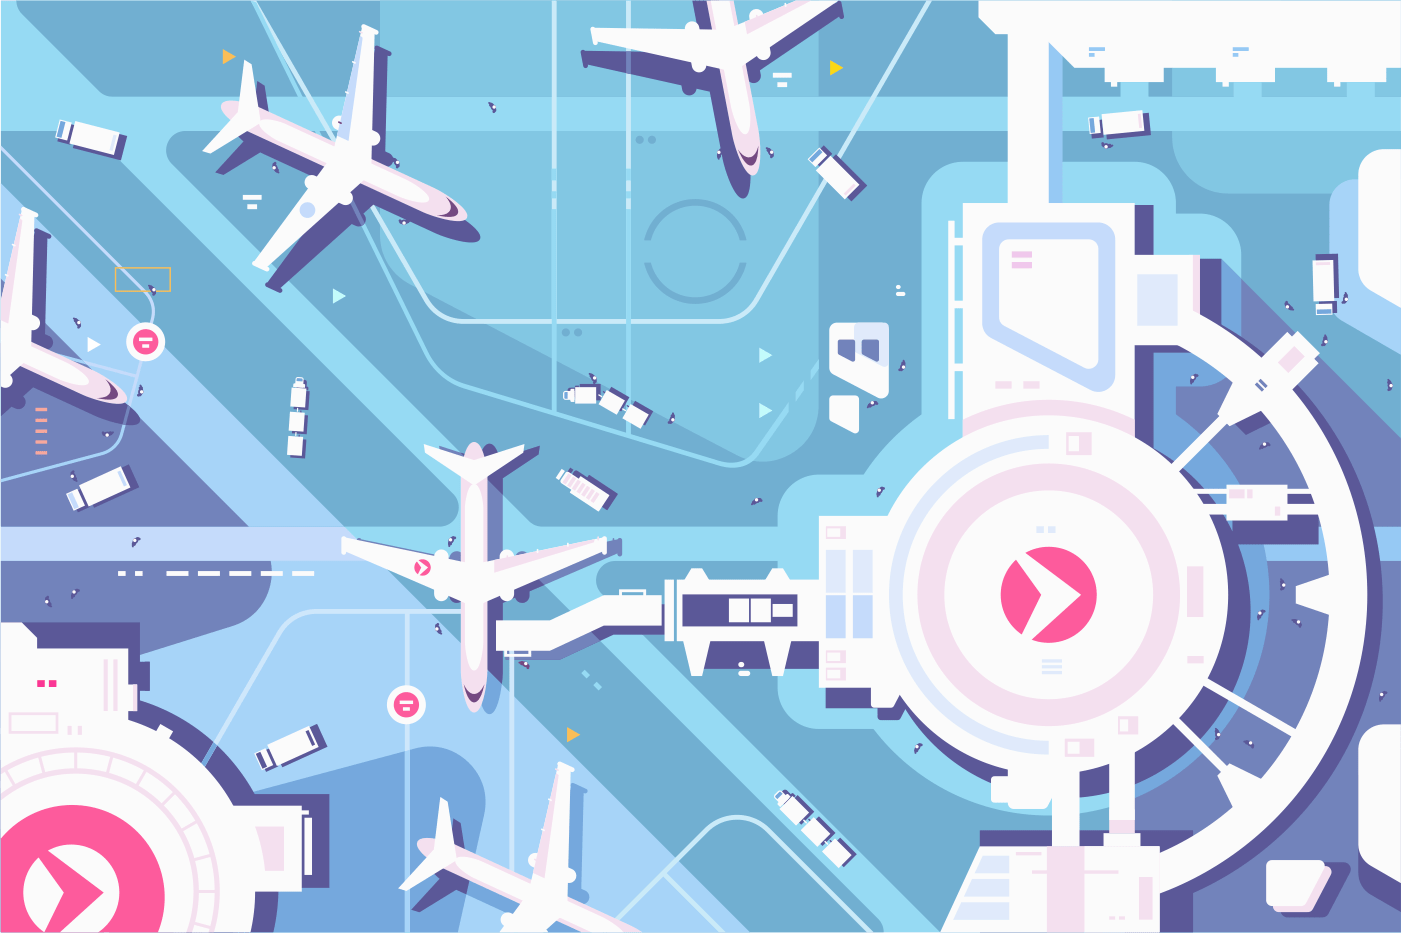 Terminal airport, airplanes and landing strip view from above. Vector illustration